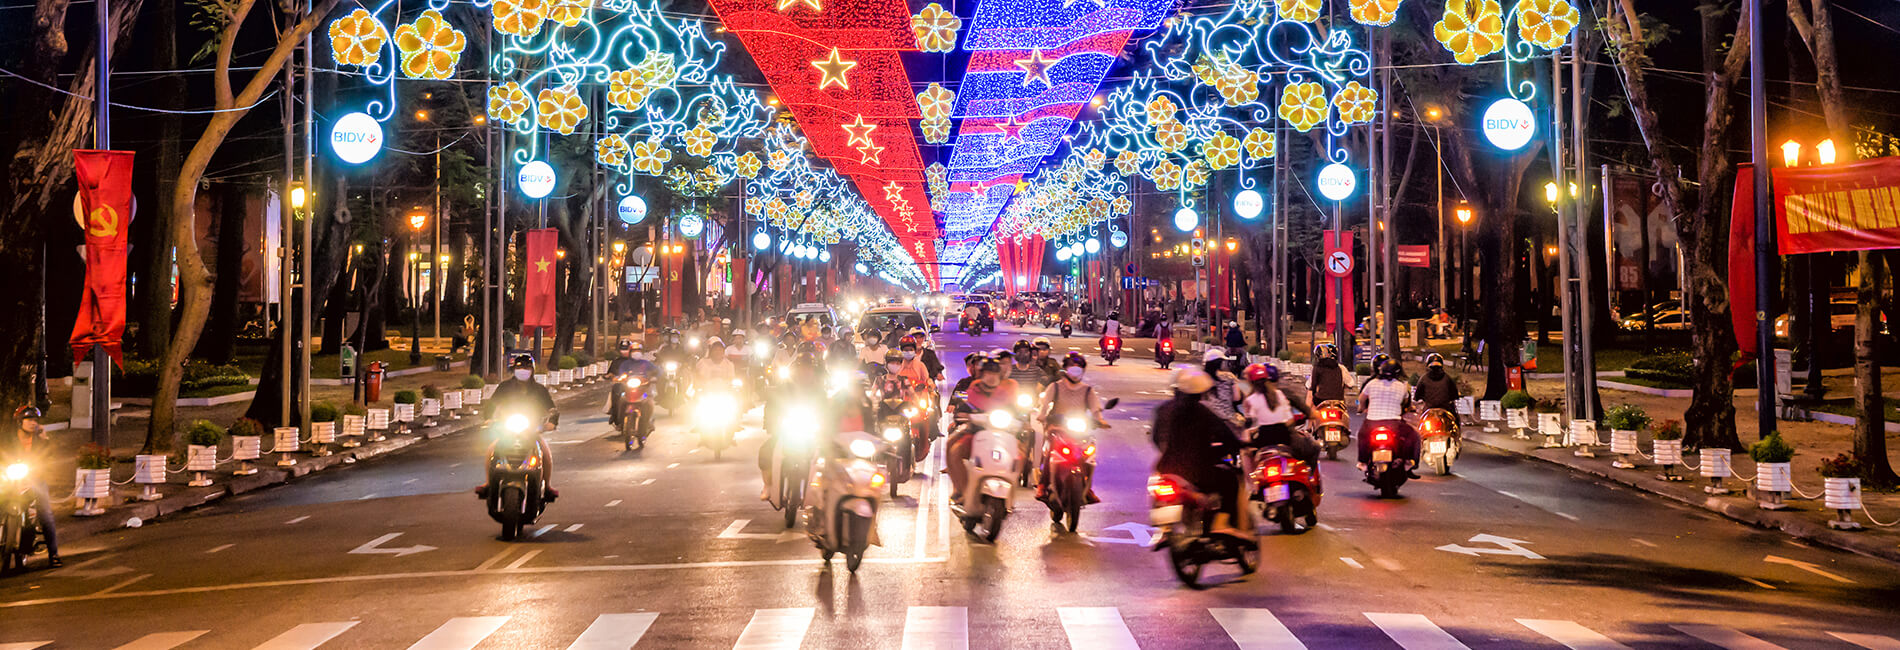 Saigon Nightlife At A Glance Private Tour